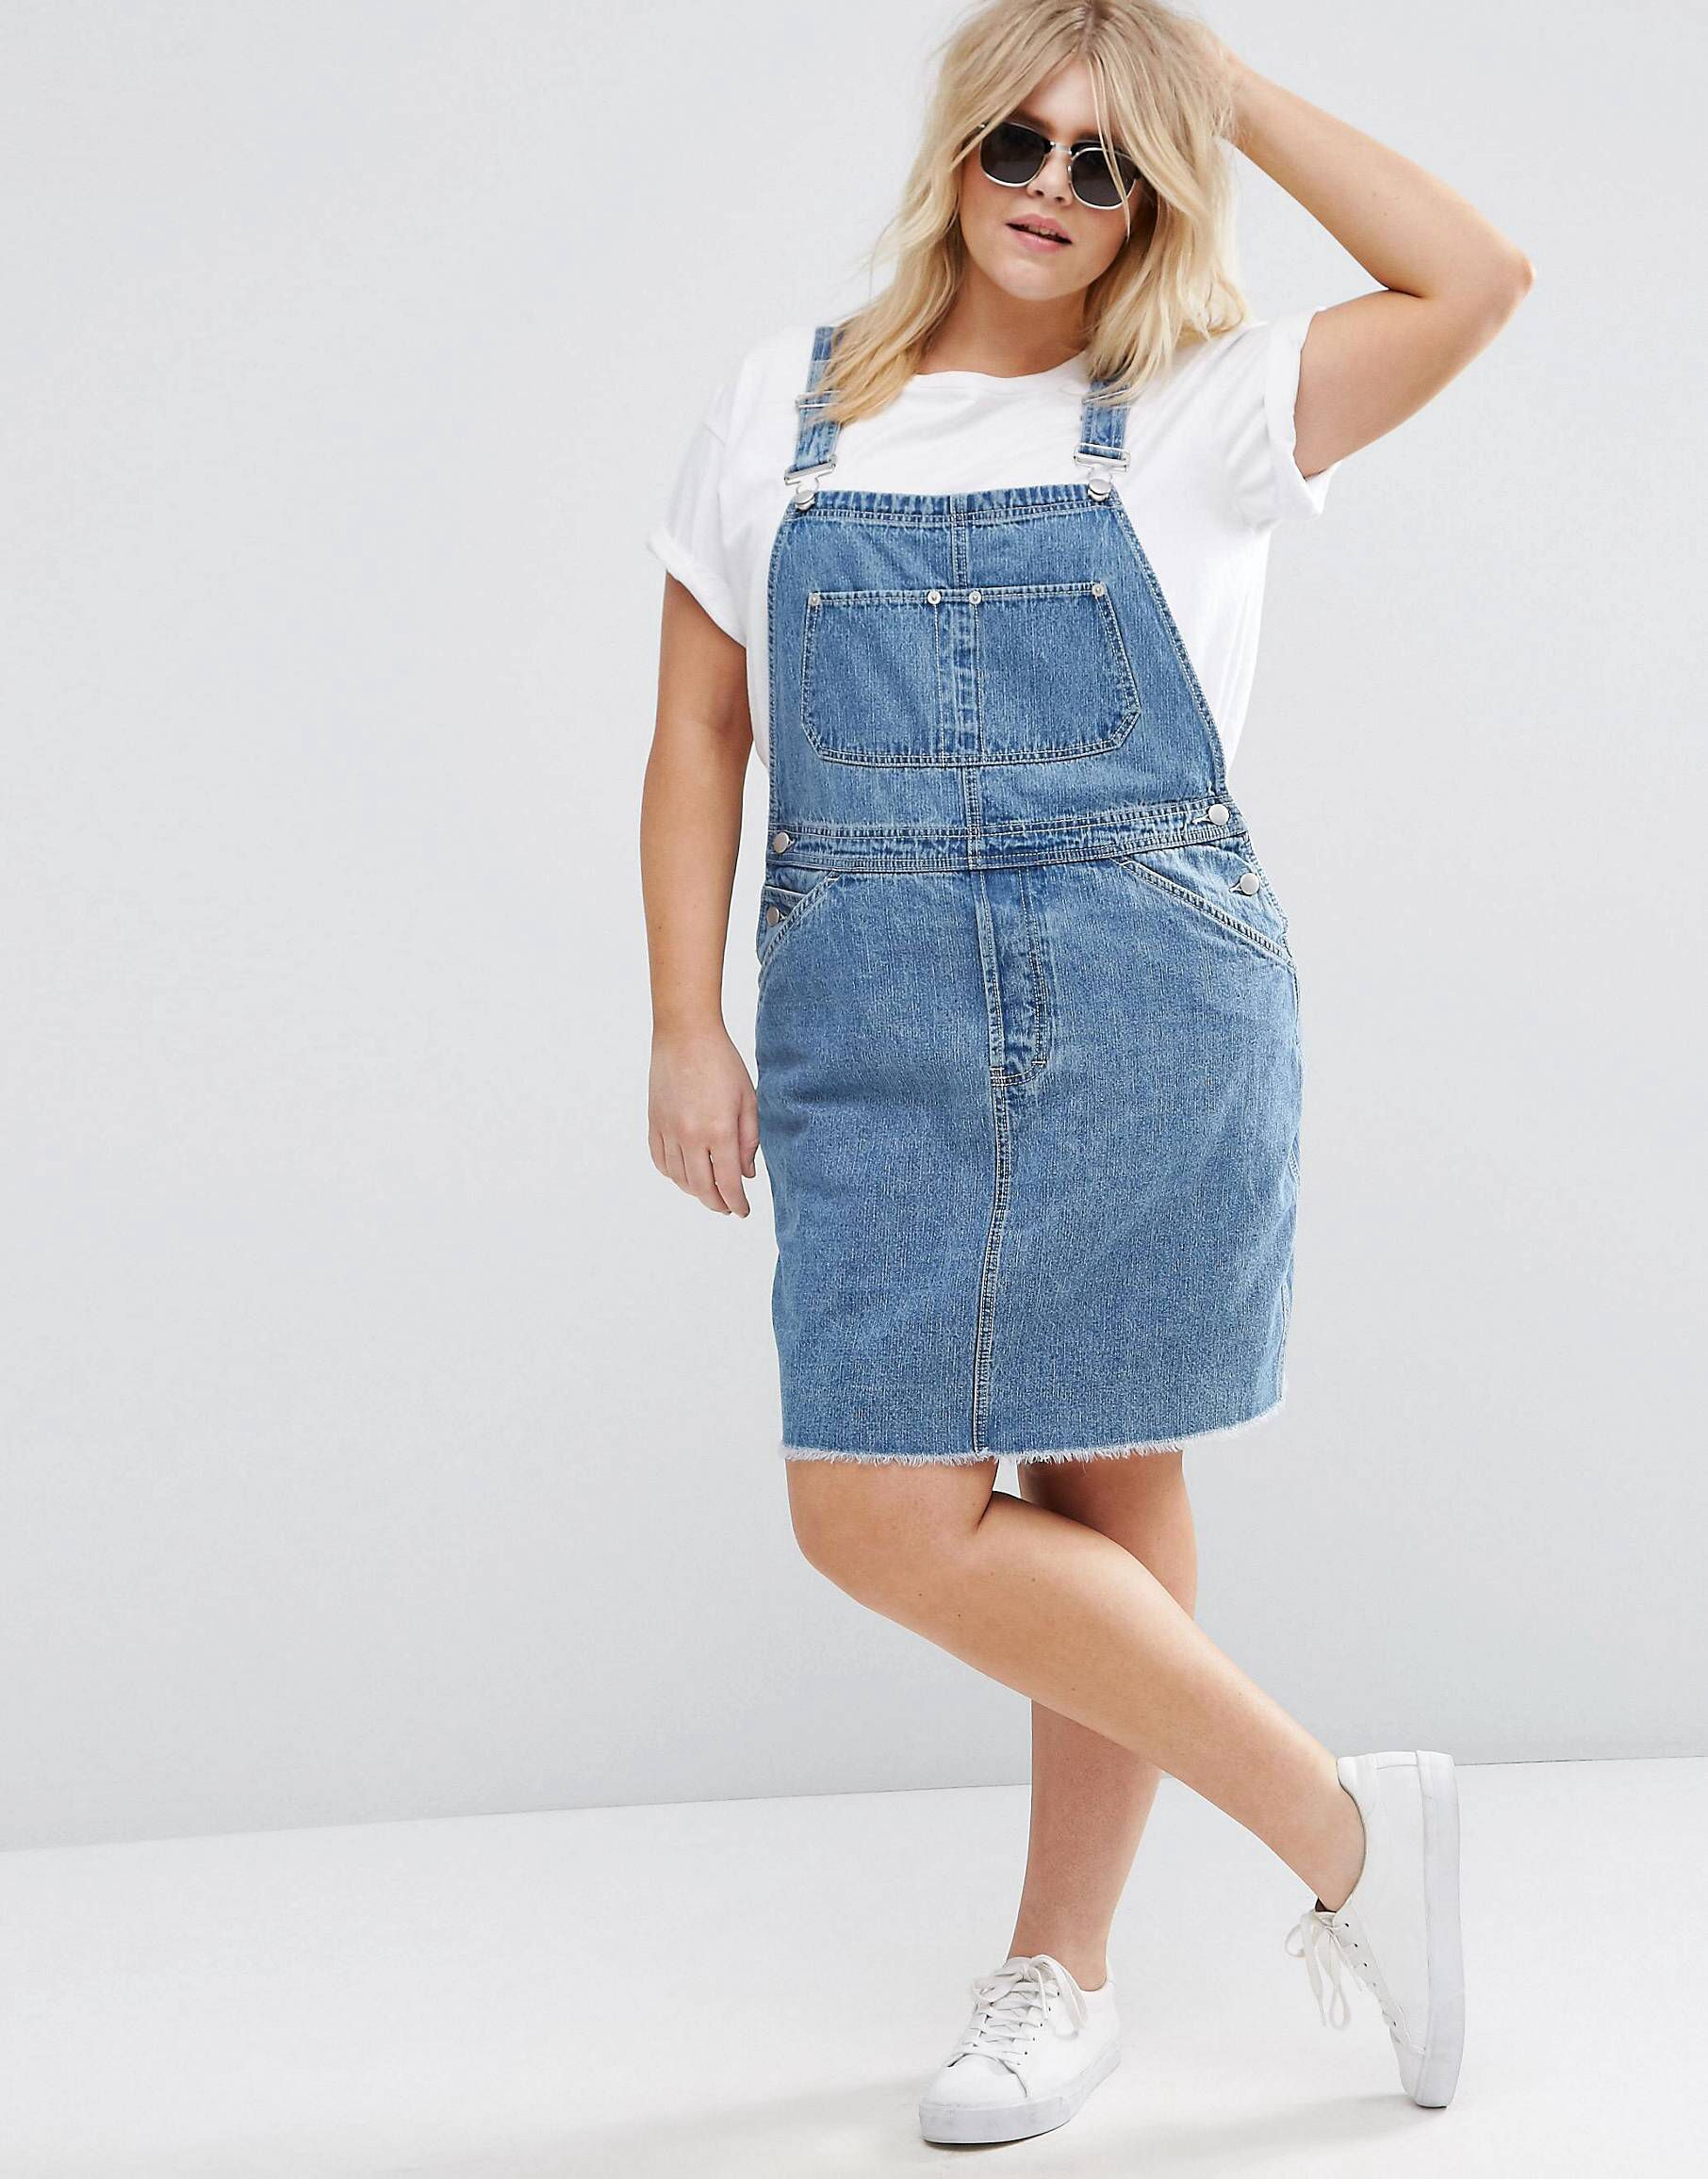 ASOS CURVE Dungaree Dress in Mid Wash Blue | Latest fashion ...